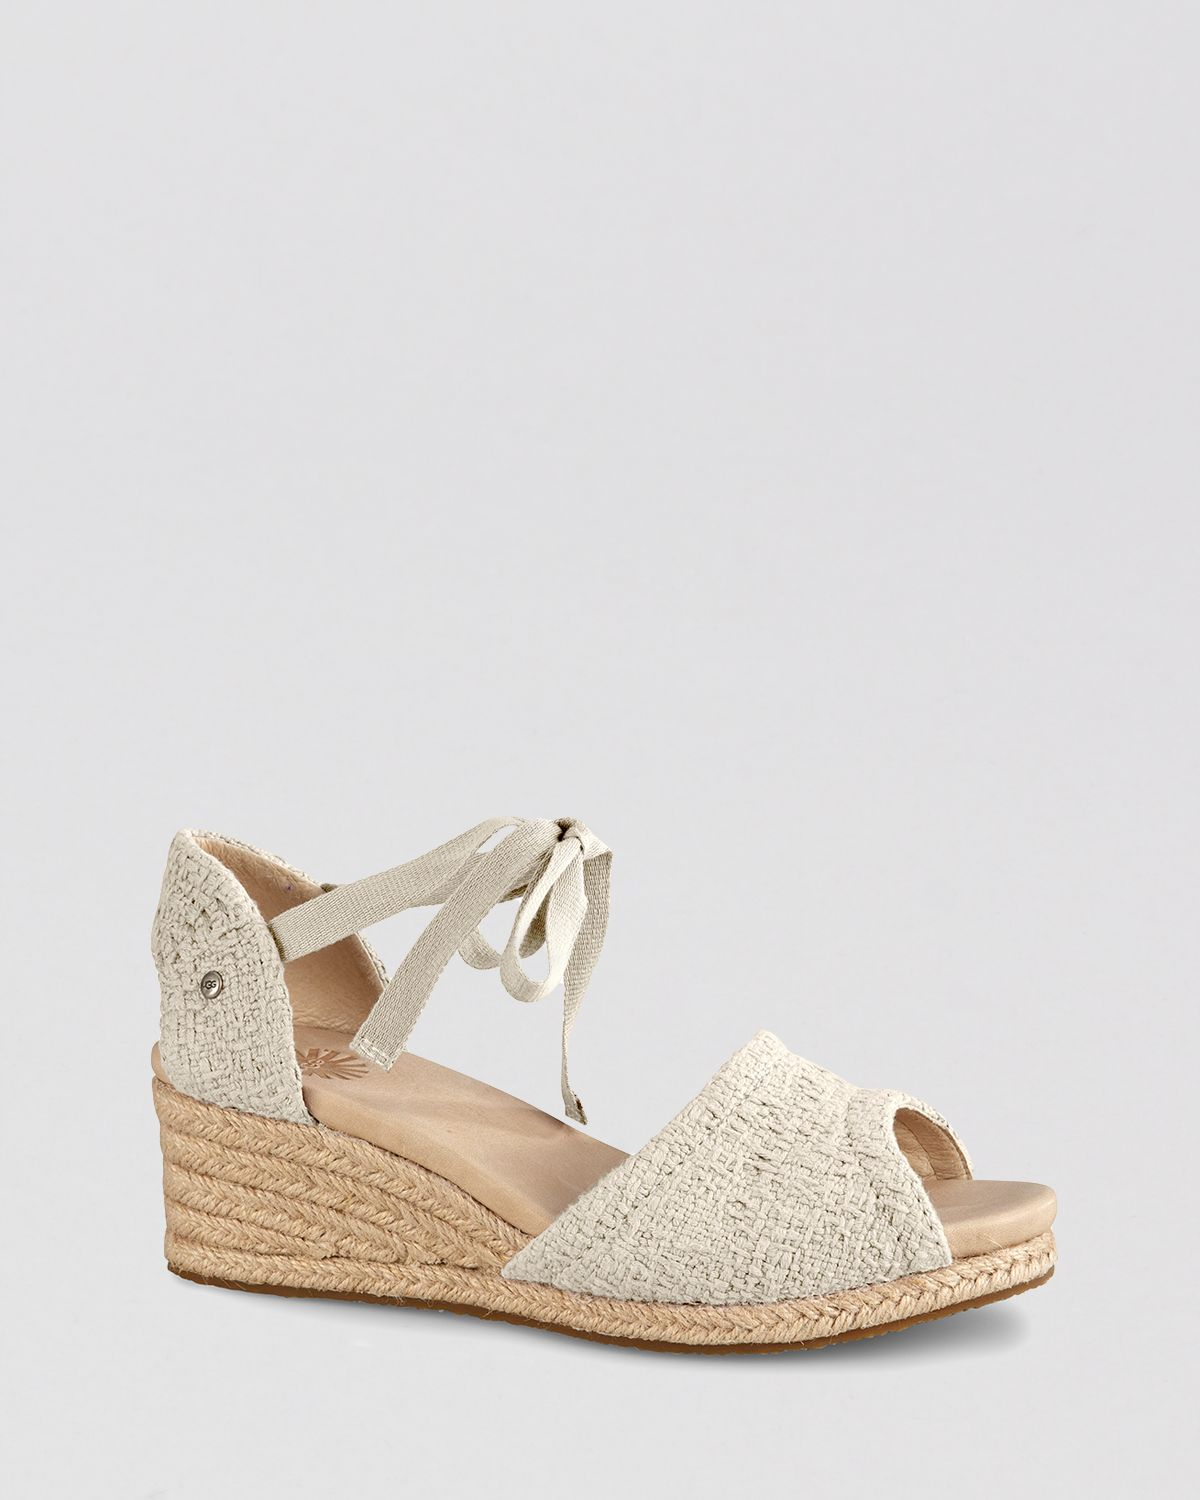 3a1eb99e2da Gallery. Previously sold at  Bloomingdale s · Women s Ugg Espadrilles  Women s Yellow Wedge ...